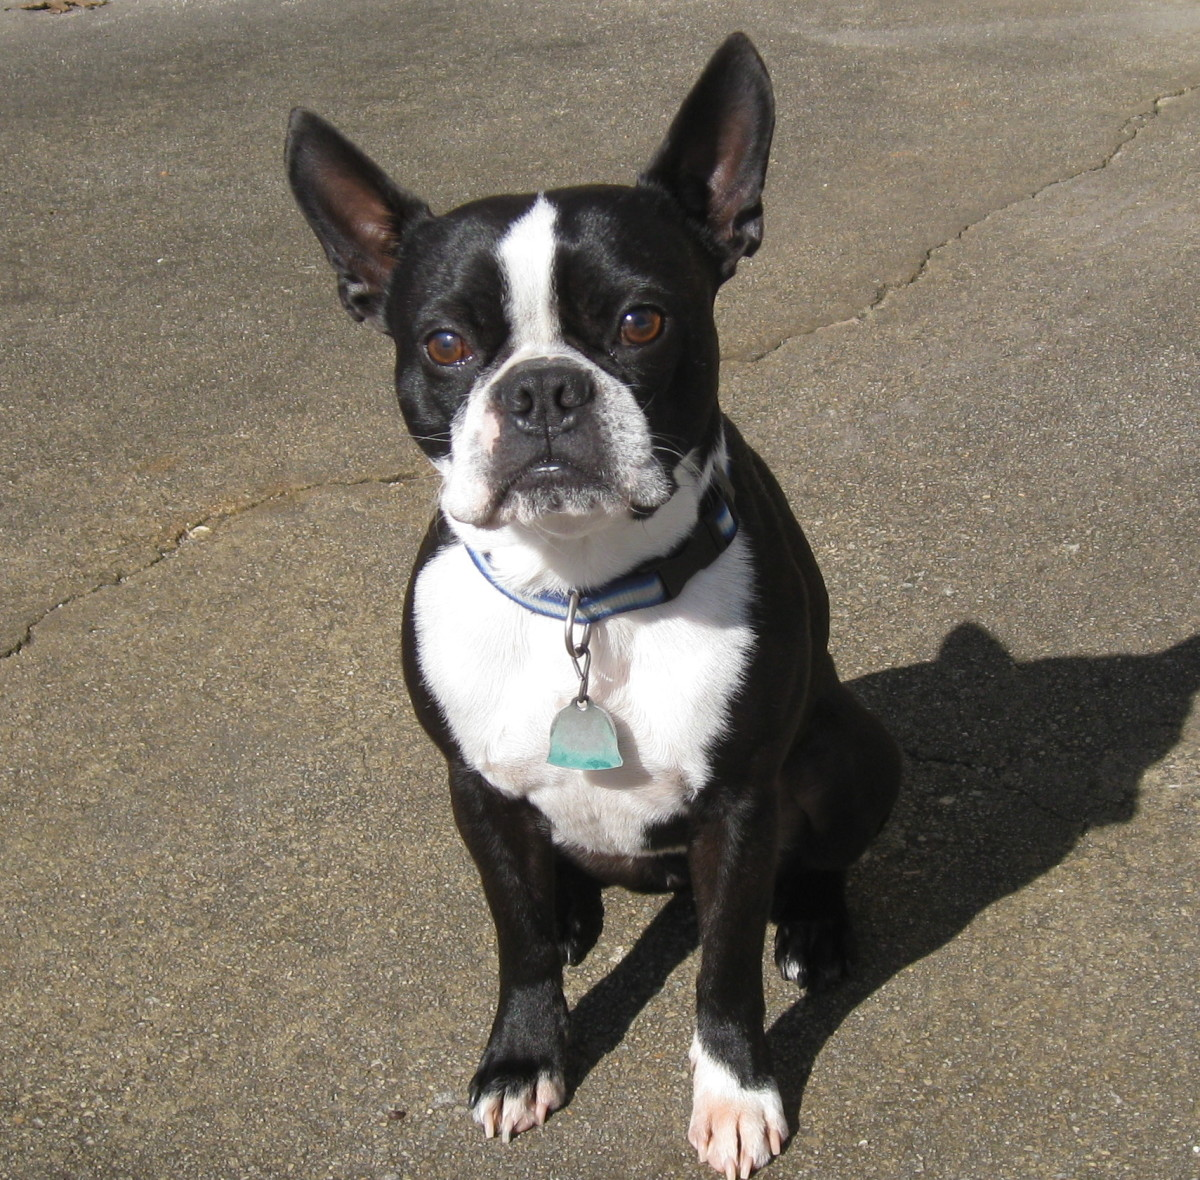 A Boston Terrier's ears should stand up naturally without being cropped